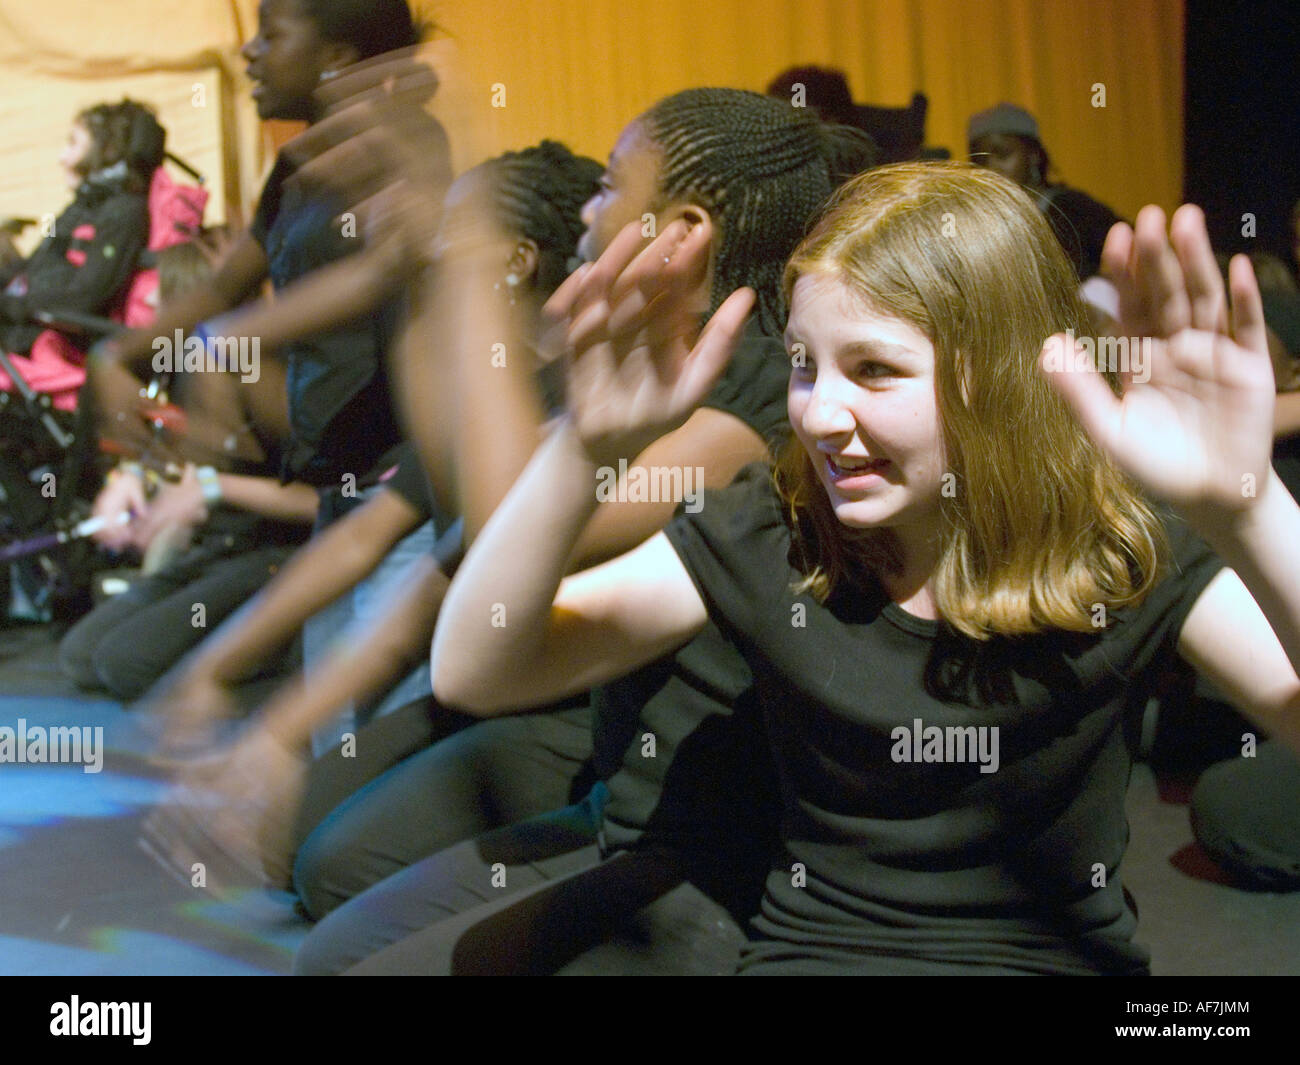 Youth theatre group in rehearsal, London, UK. - Stock Image